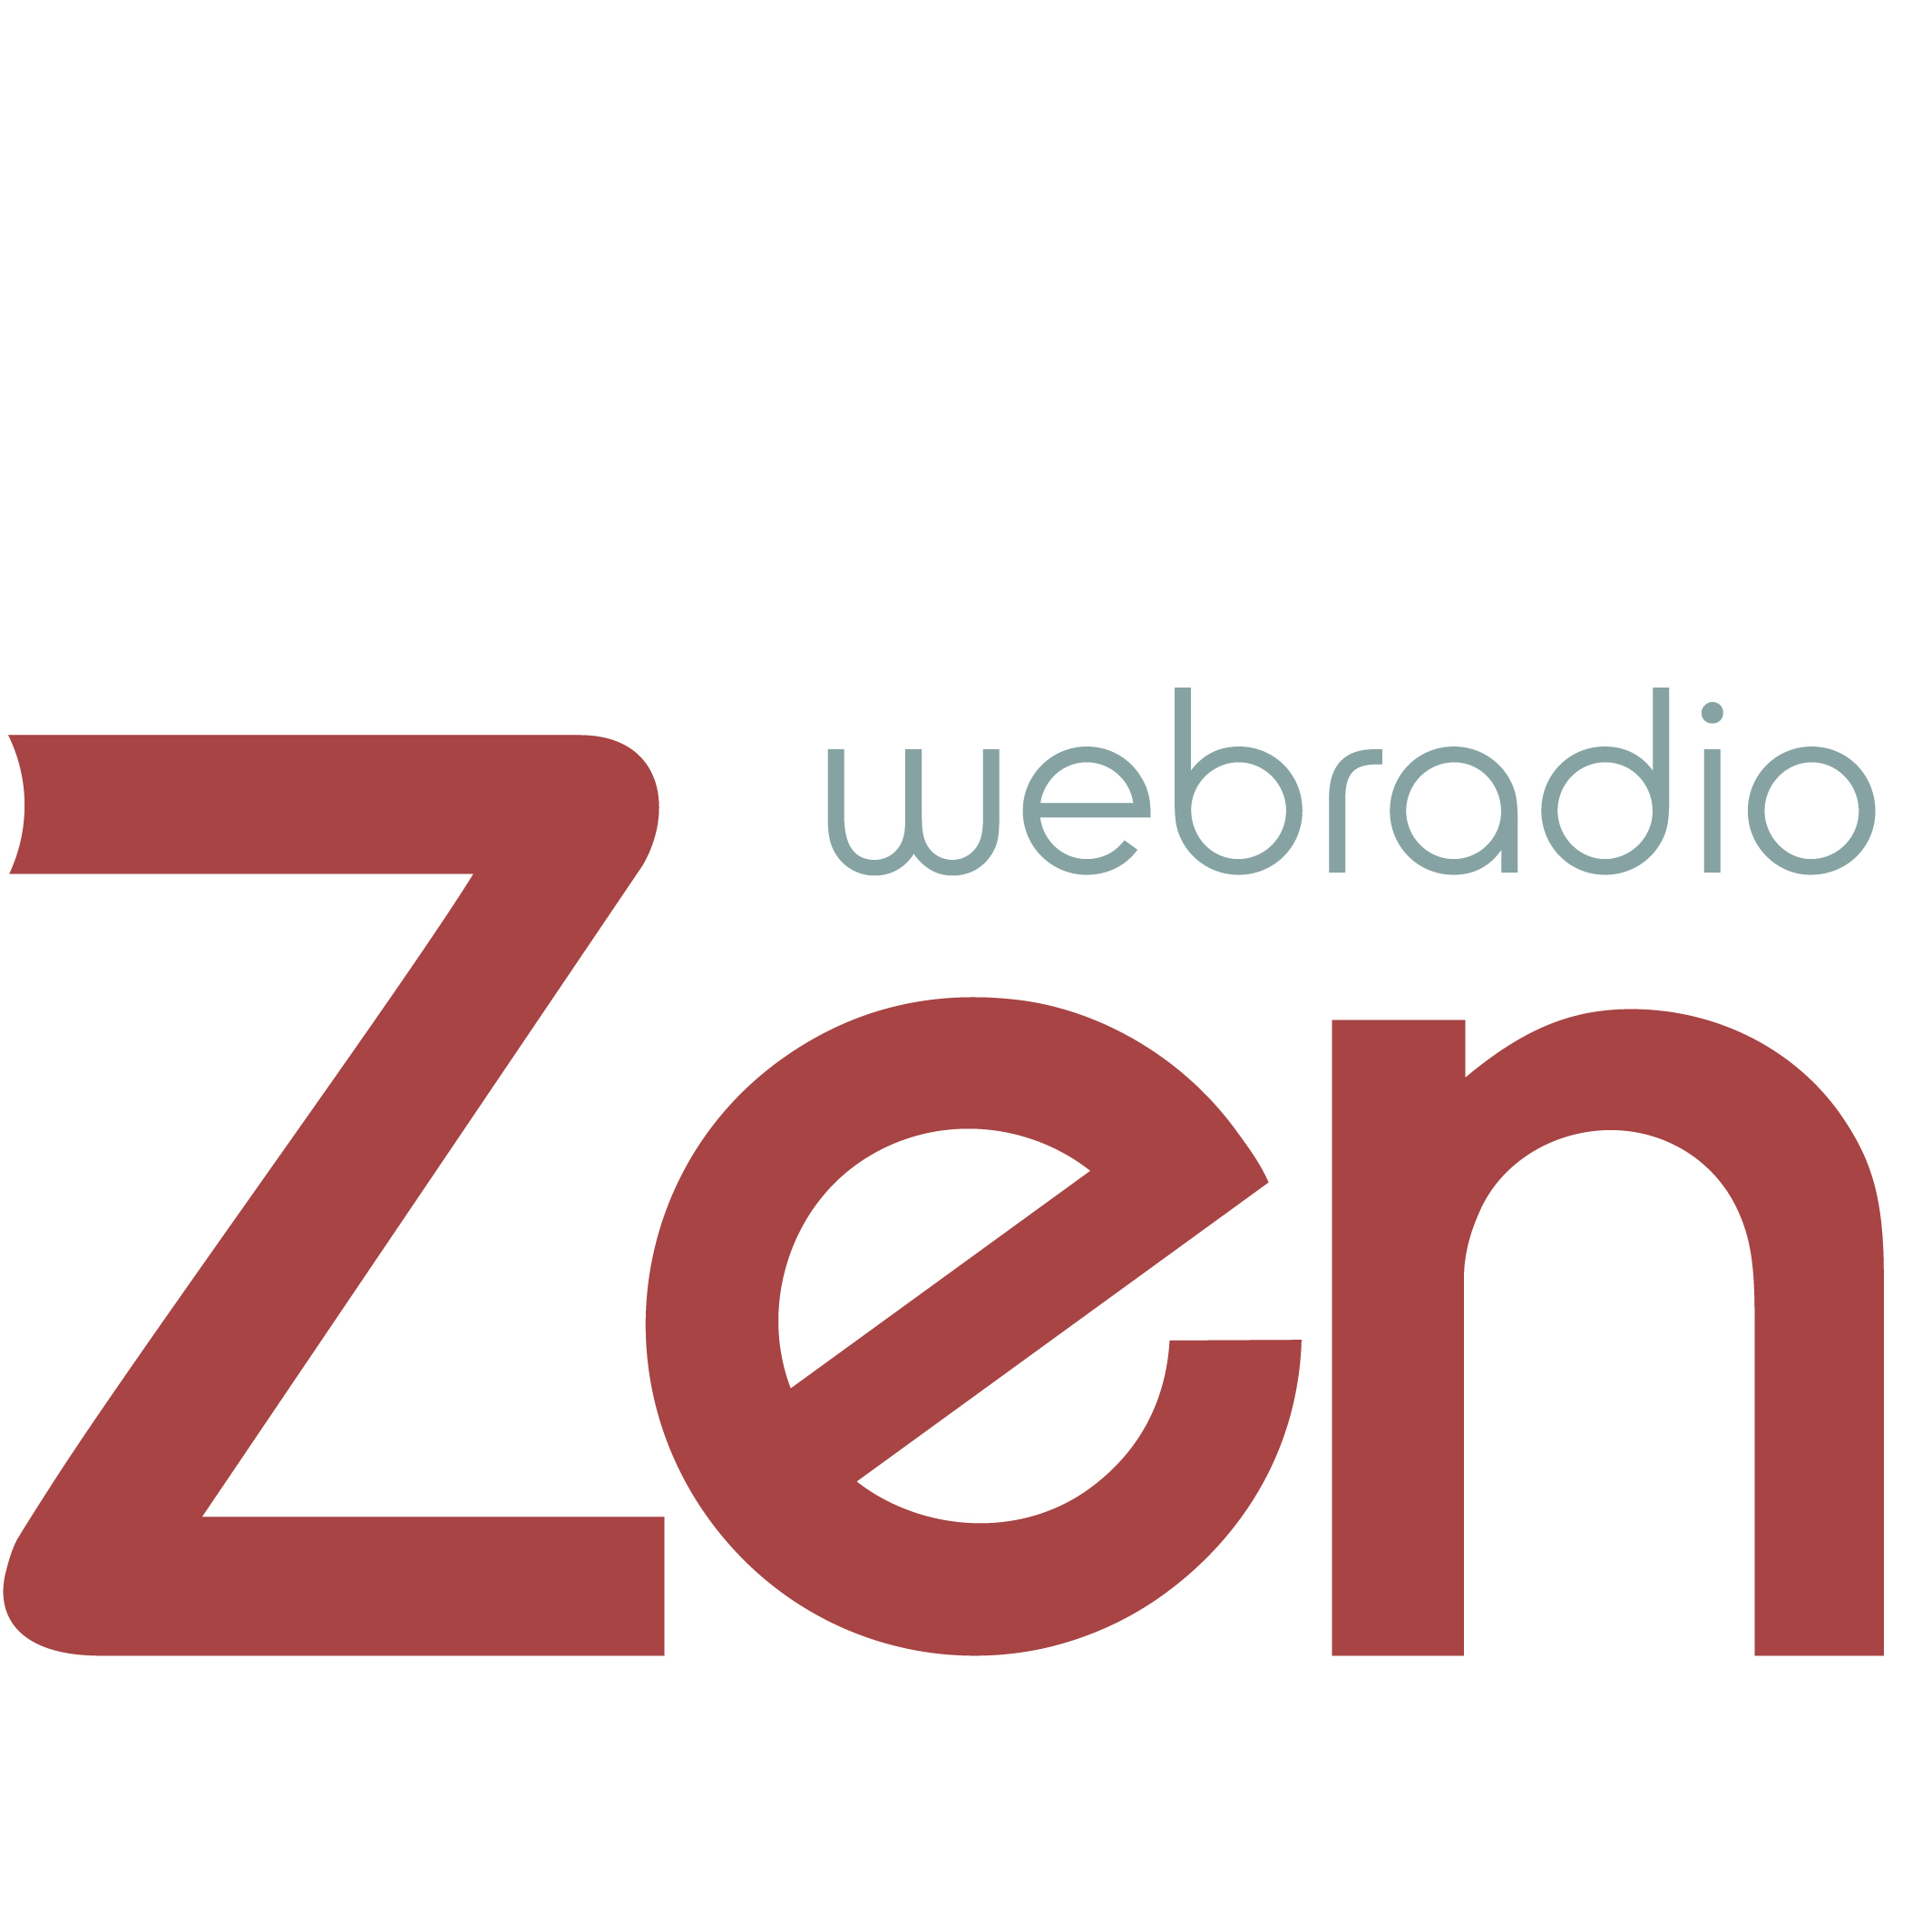 Citizen Web Radio